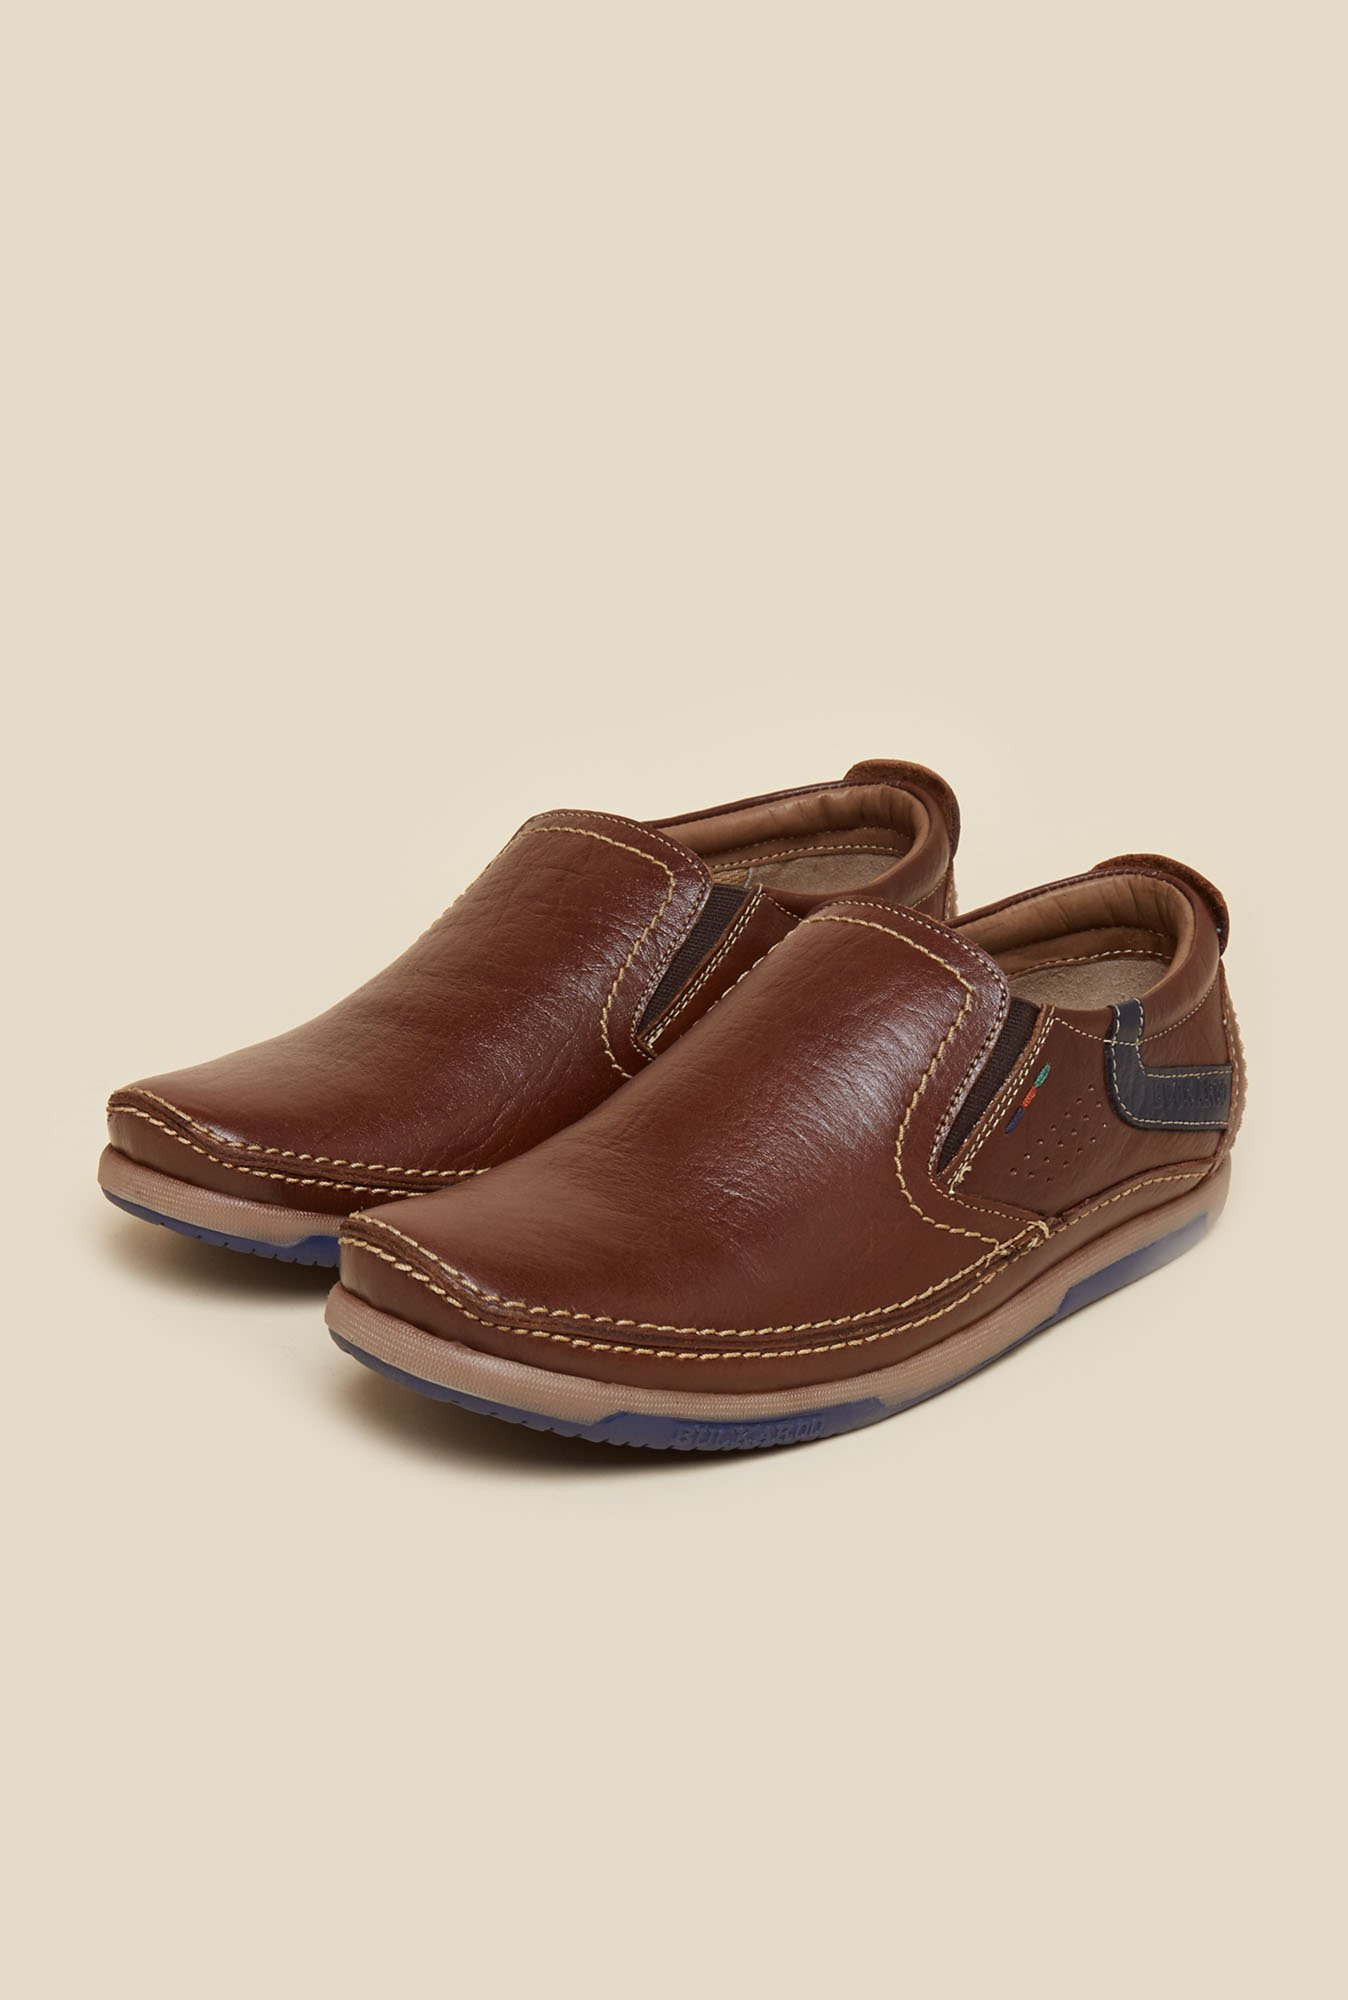 Buckaroo Beltran Brown Loafers